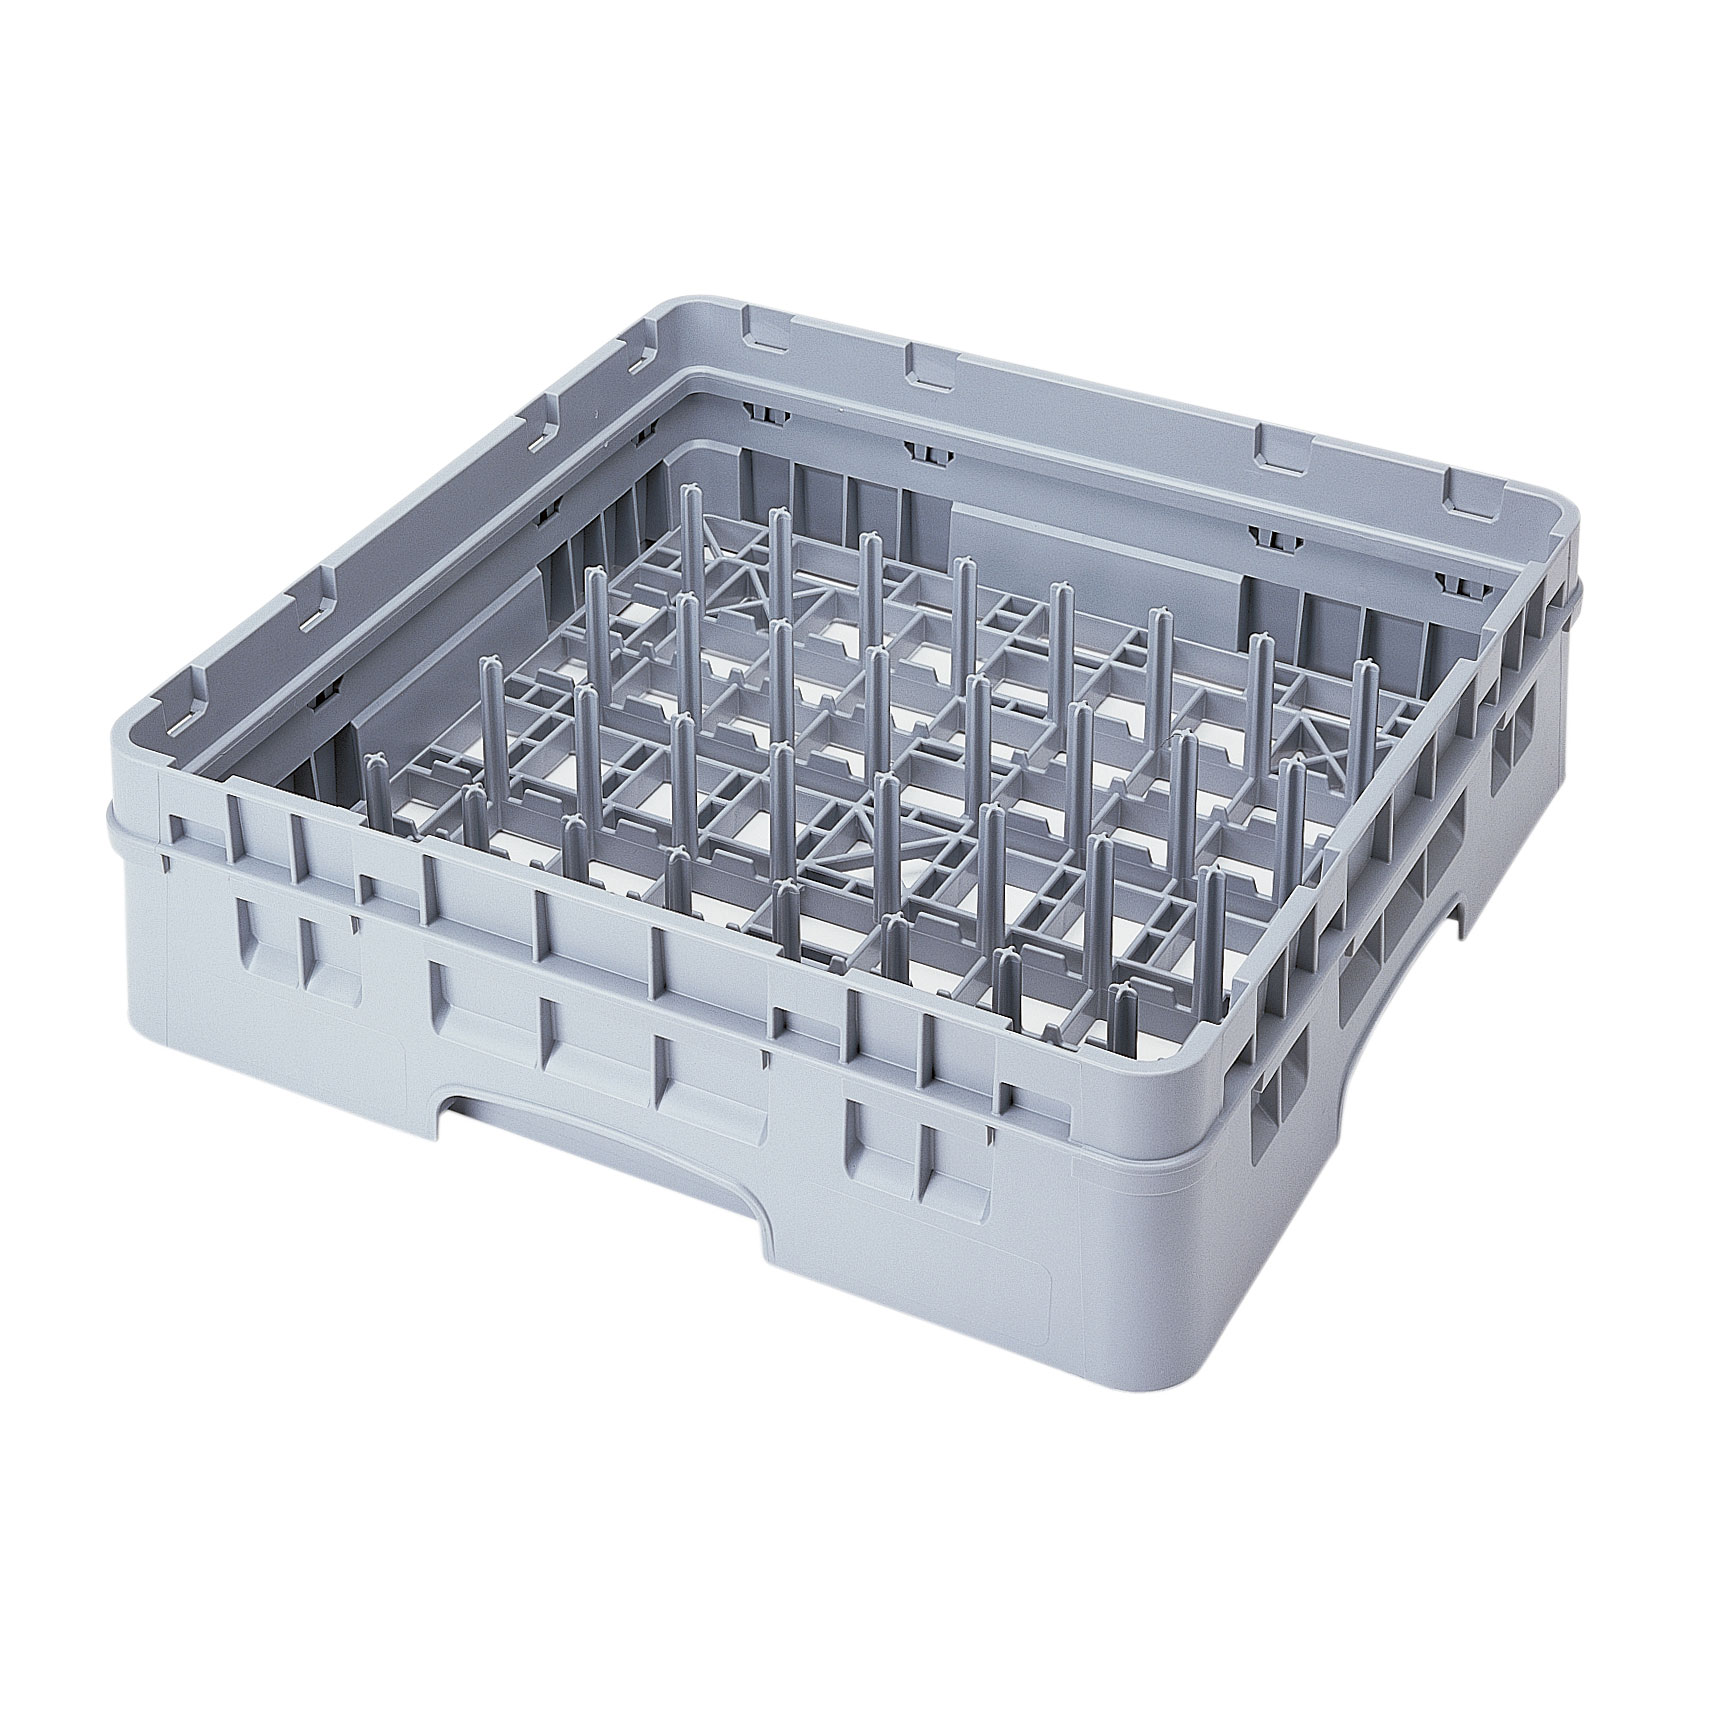 Cambro PR59500151 warewashings racks